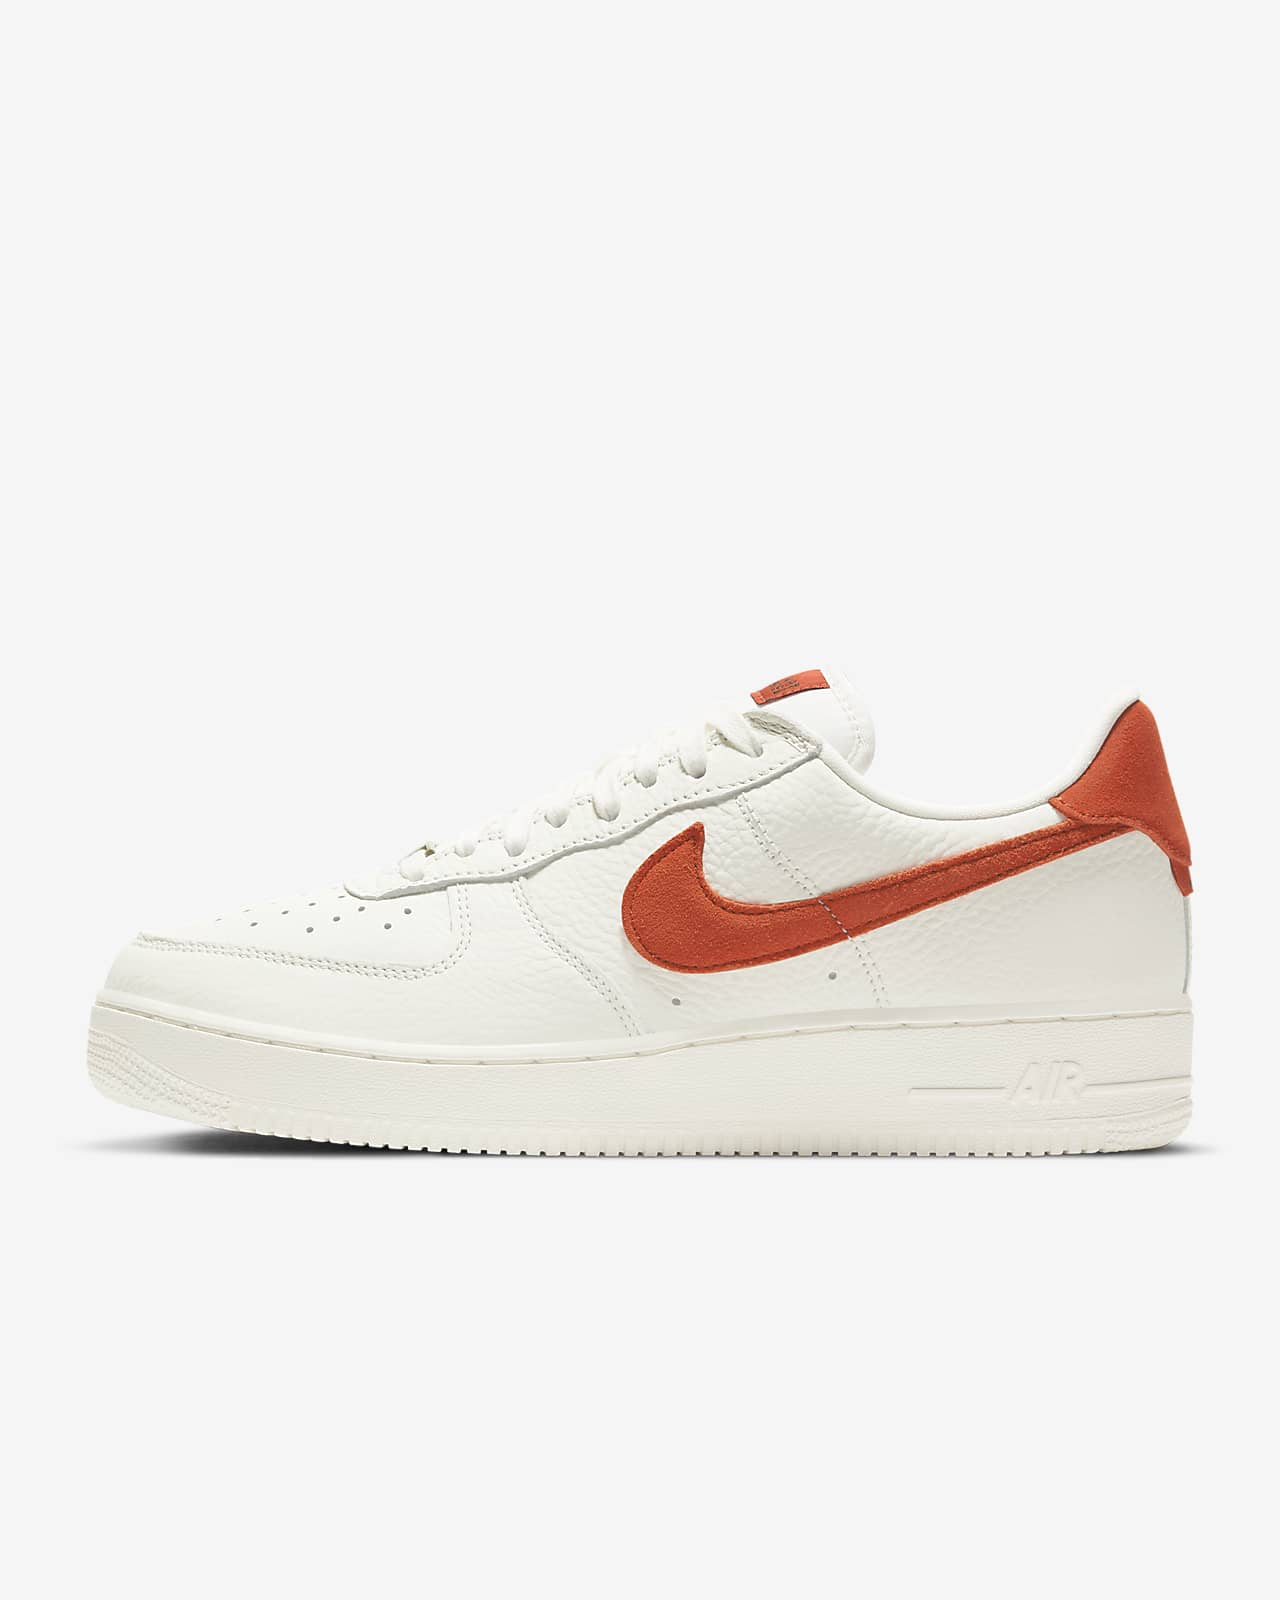 Nike Air Force 1 '07 Craft Men's Shoe